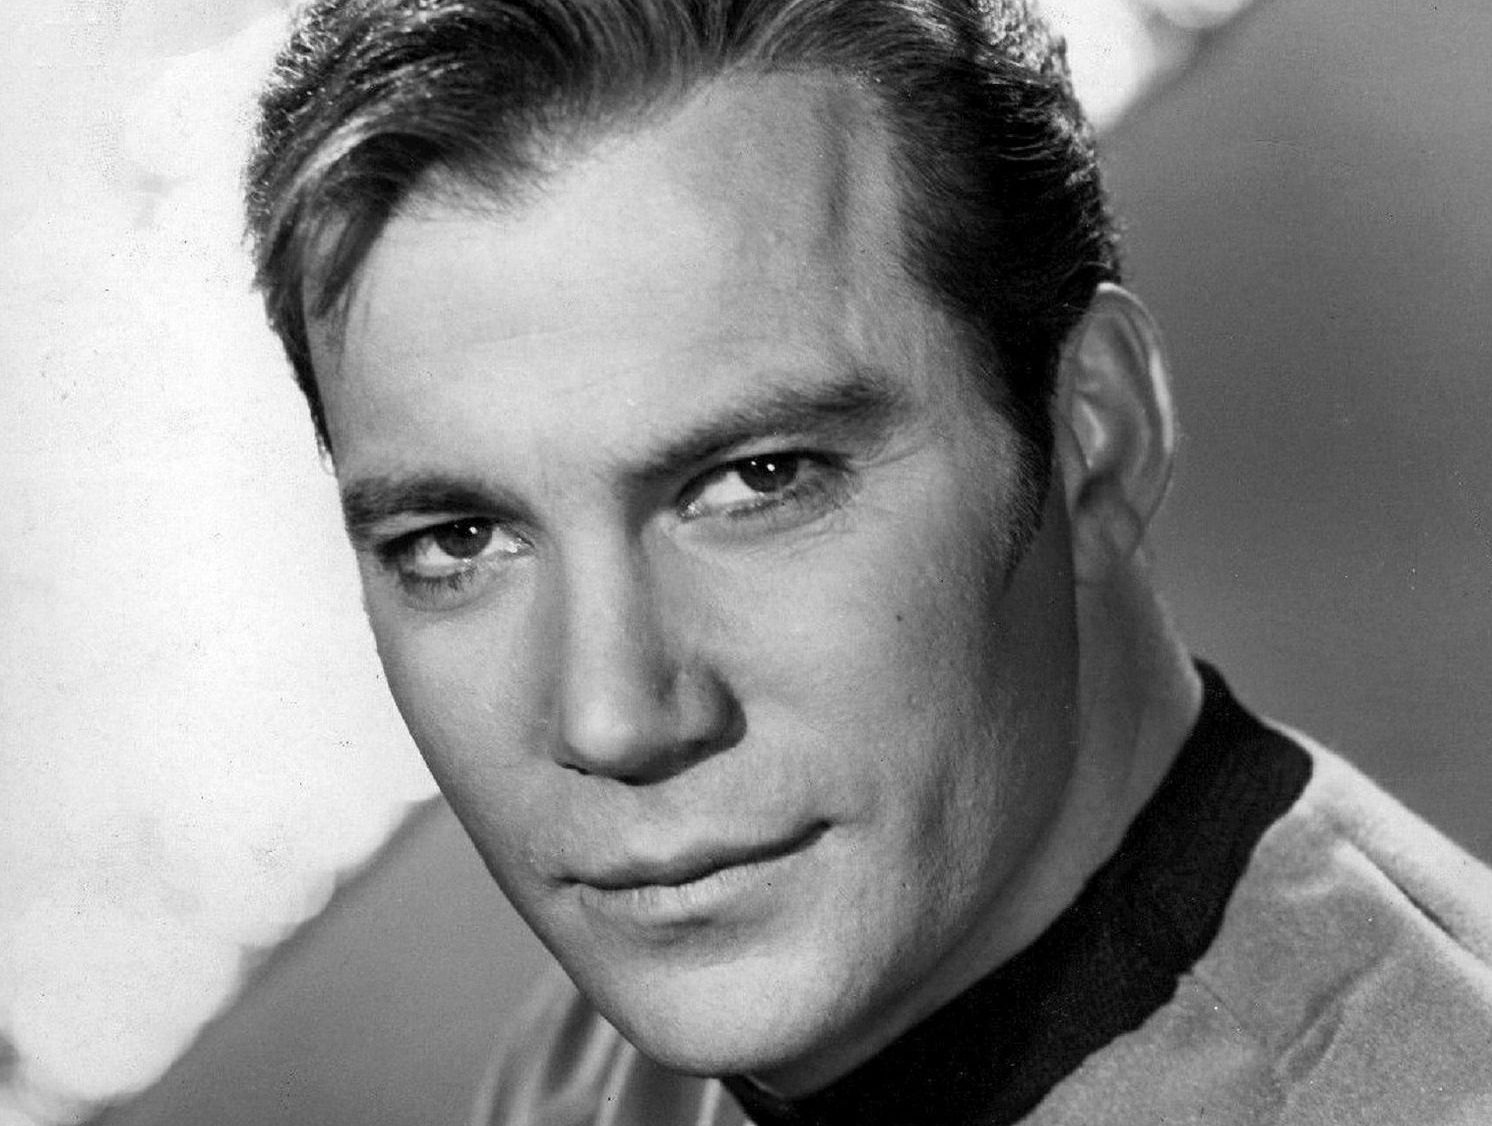 The Story of William Shatner - Another Celebrity Saved by CPAP